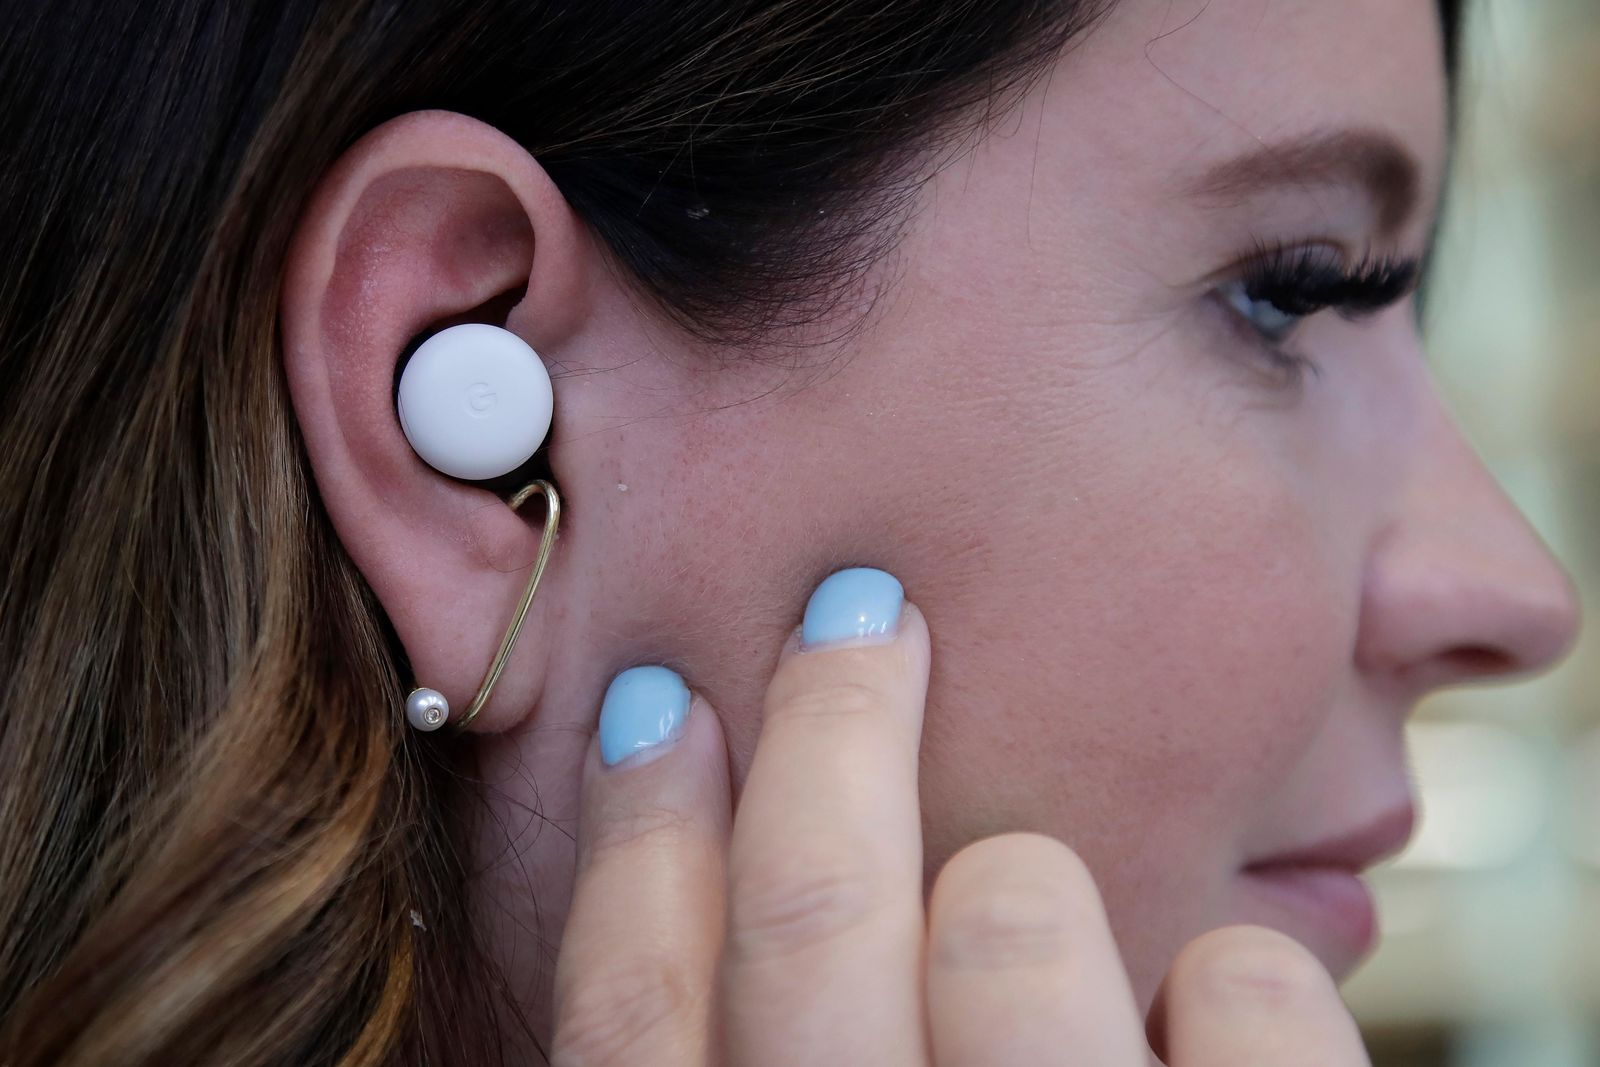 In this Tuesday, Sept. 24, 2019, photo  Isabelle Olsson, head of color & design for Nest, shows Pixel buds in her ear at Google in Mountain View, Calif. (AP Photo/Jeff Chiu)